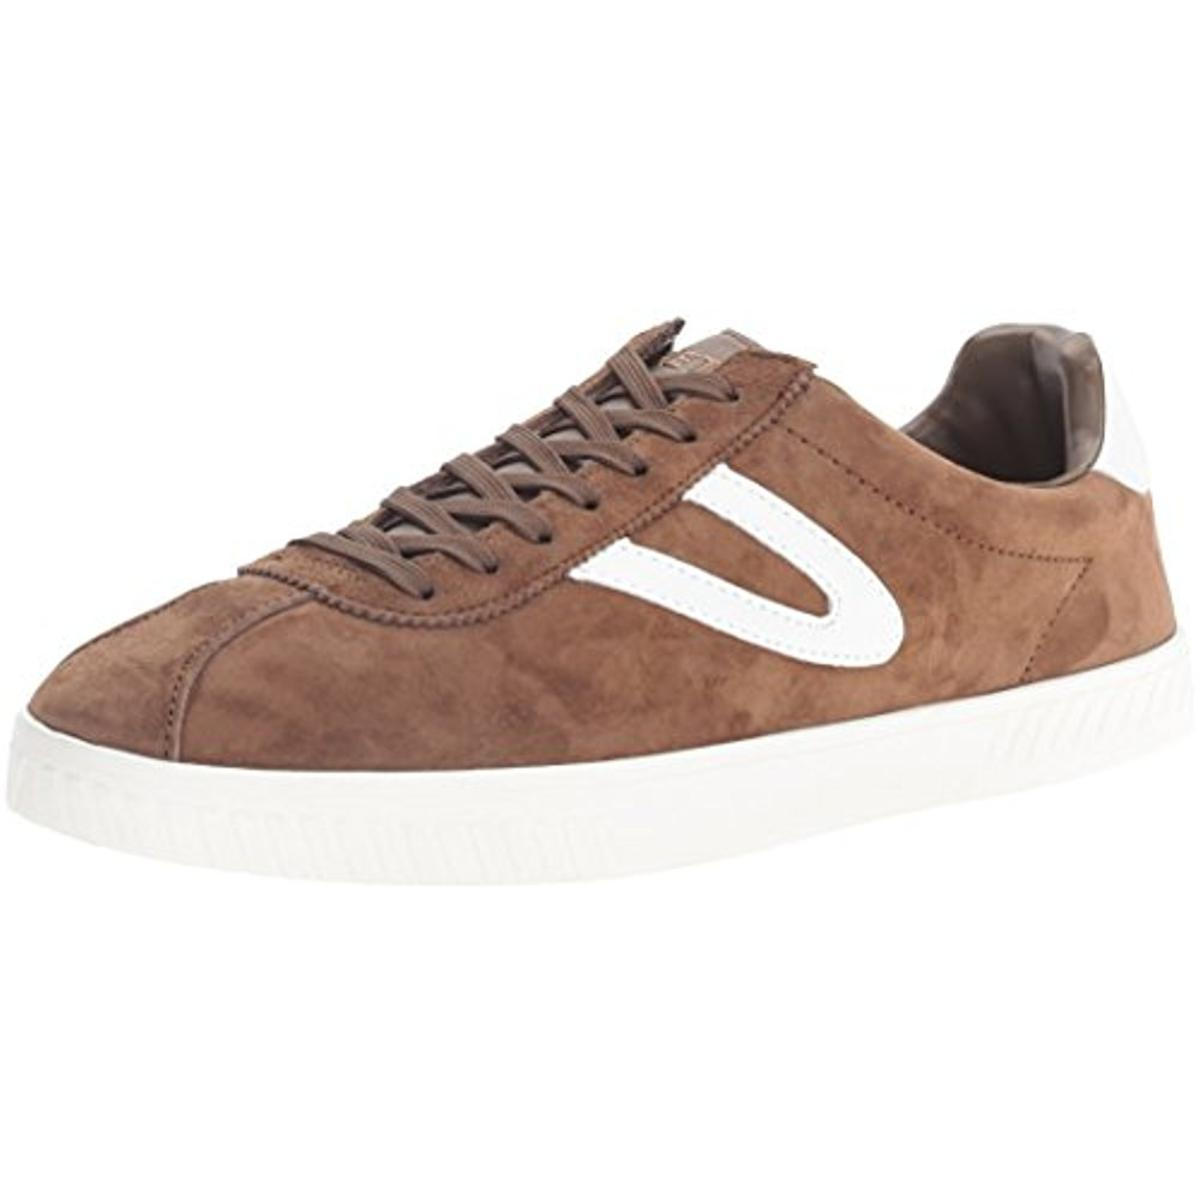 Tretorn Mens Camden3 Suede Fashion Sneakers by Tretorn